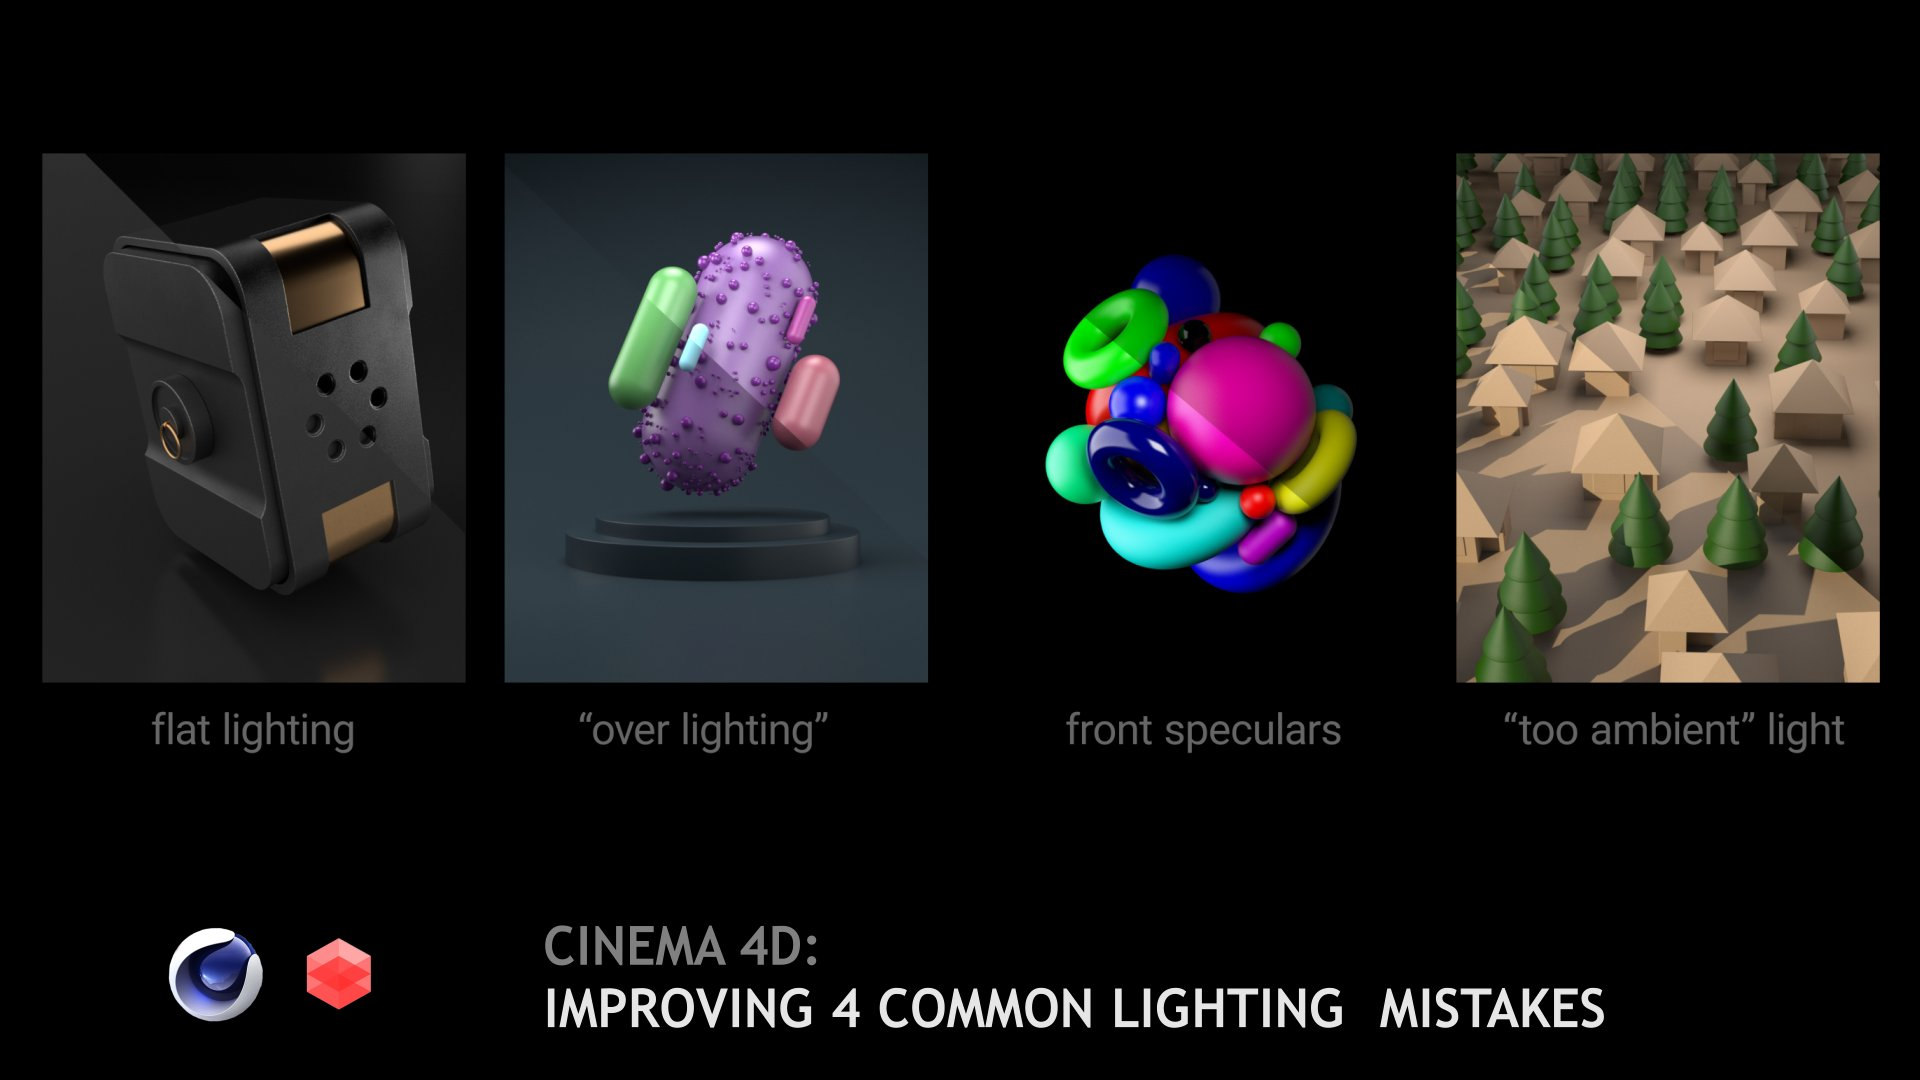 Cinema 4d  Improving 4 Common Lighting Mistakes